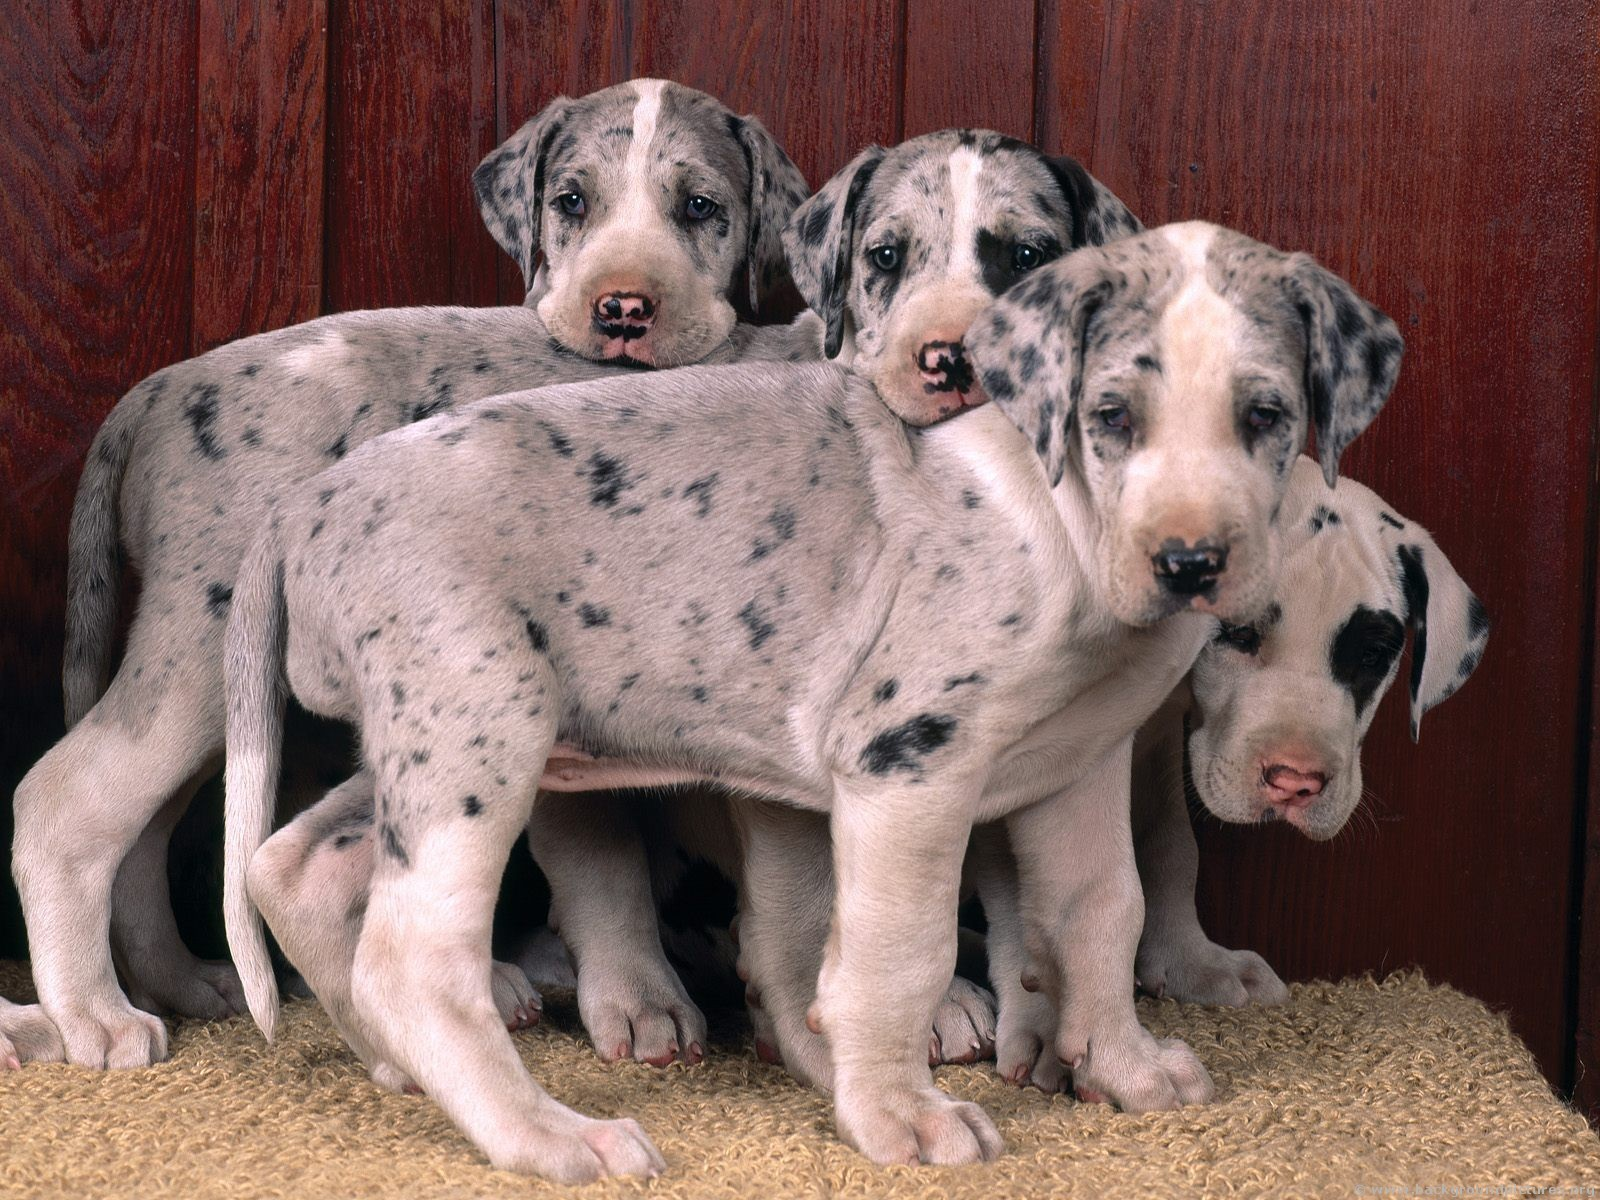 Great Dane puppies - Great Danes Photo (15342697) - Fanpop fanclubs